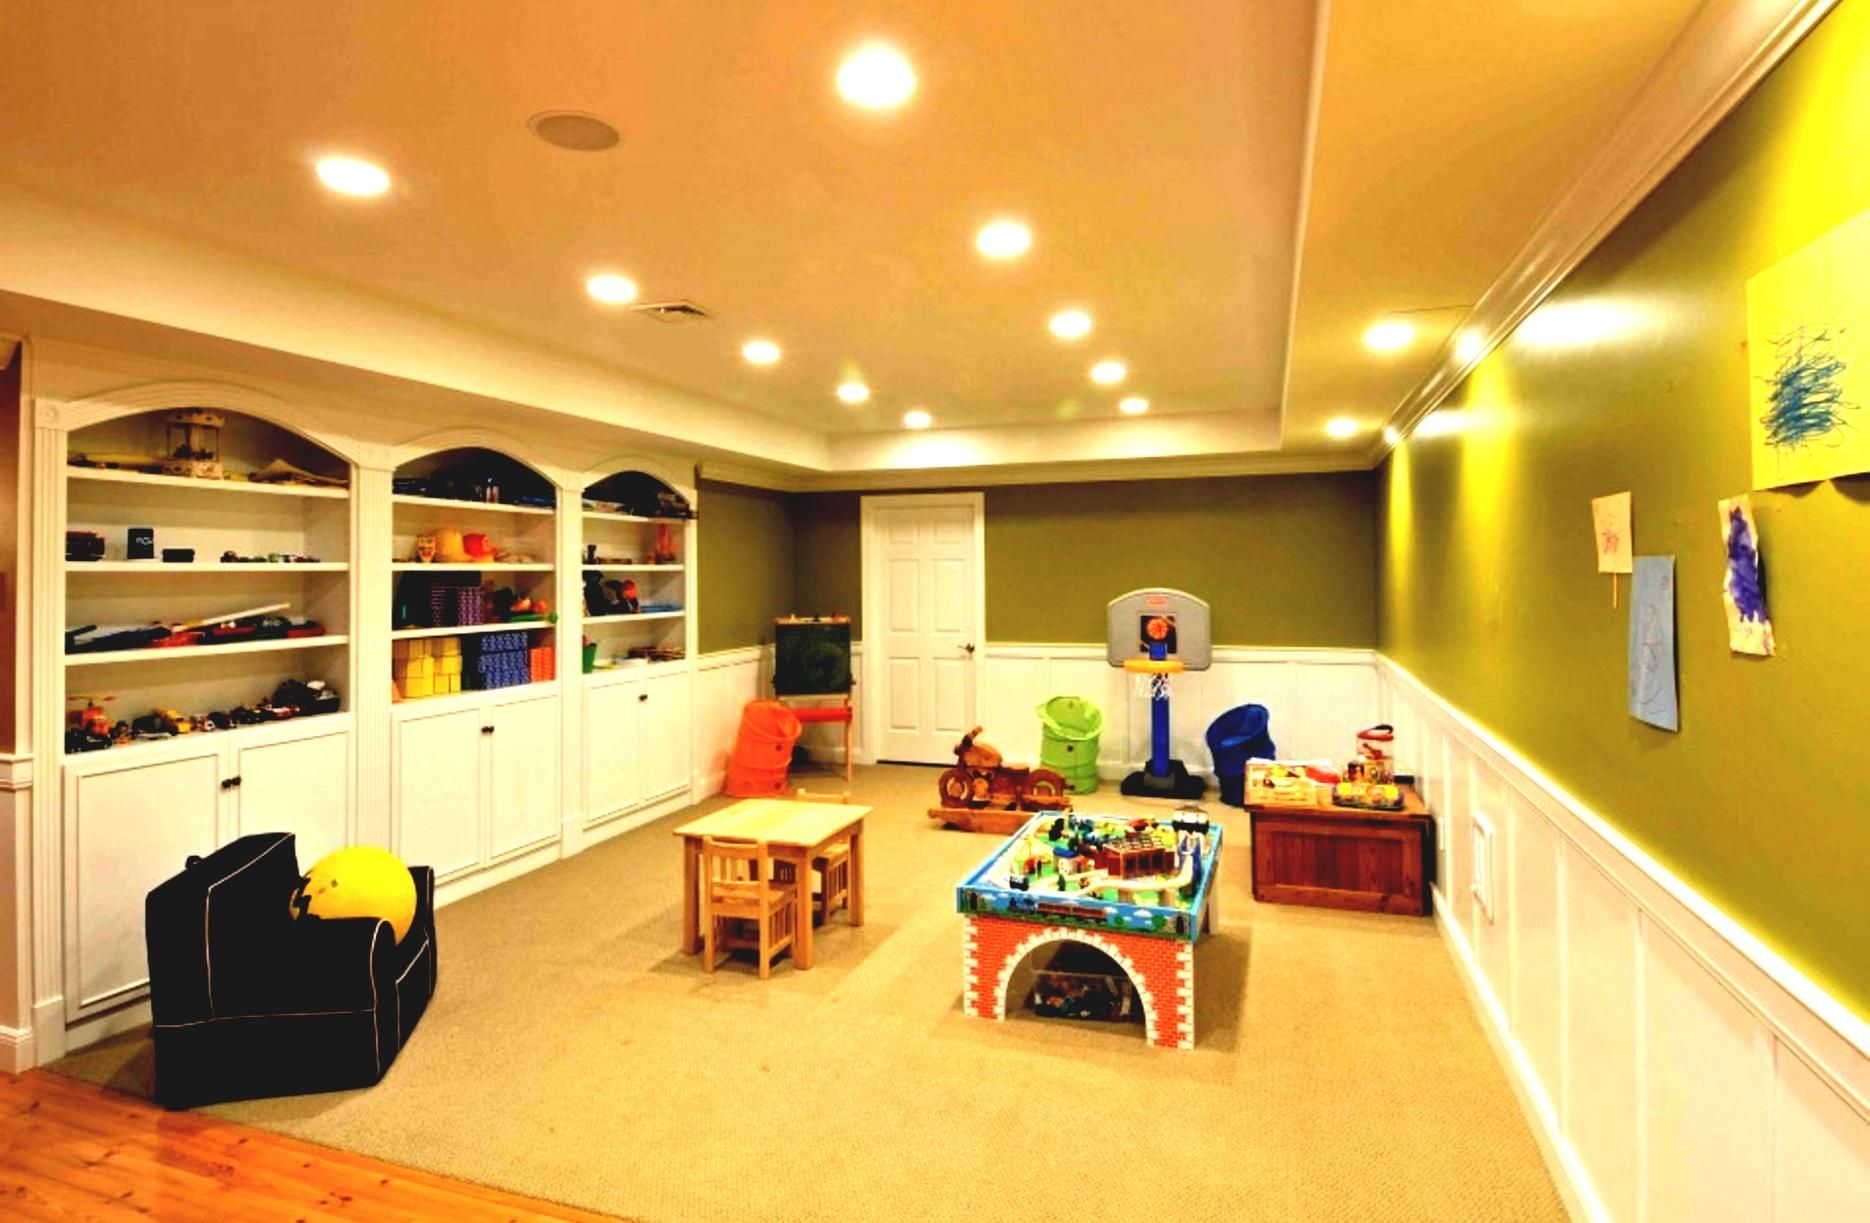 Basement Ideas For Kids Basement Remodel With Kids Playroom Resource Remodeling